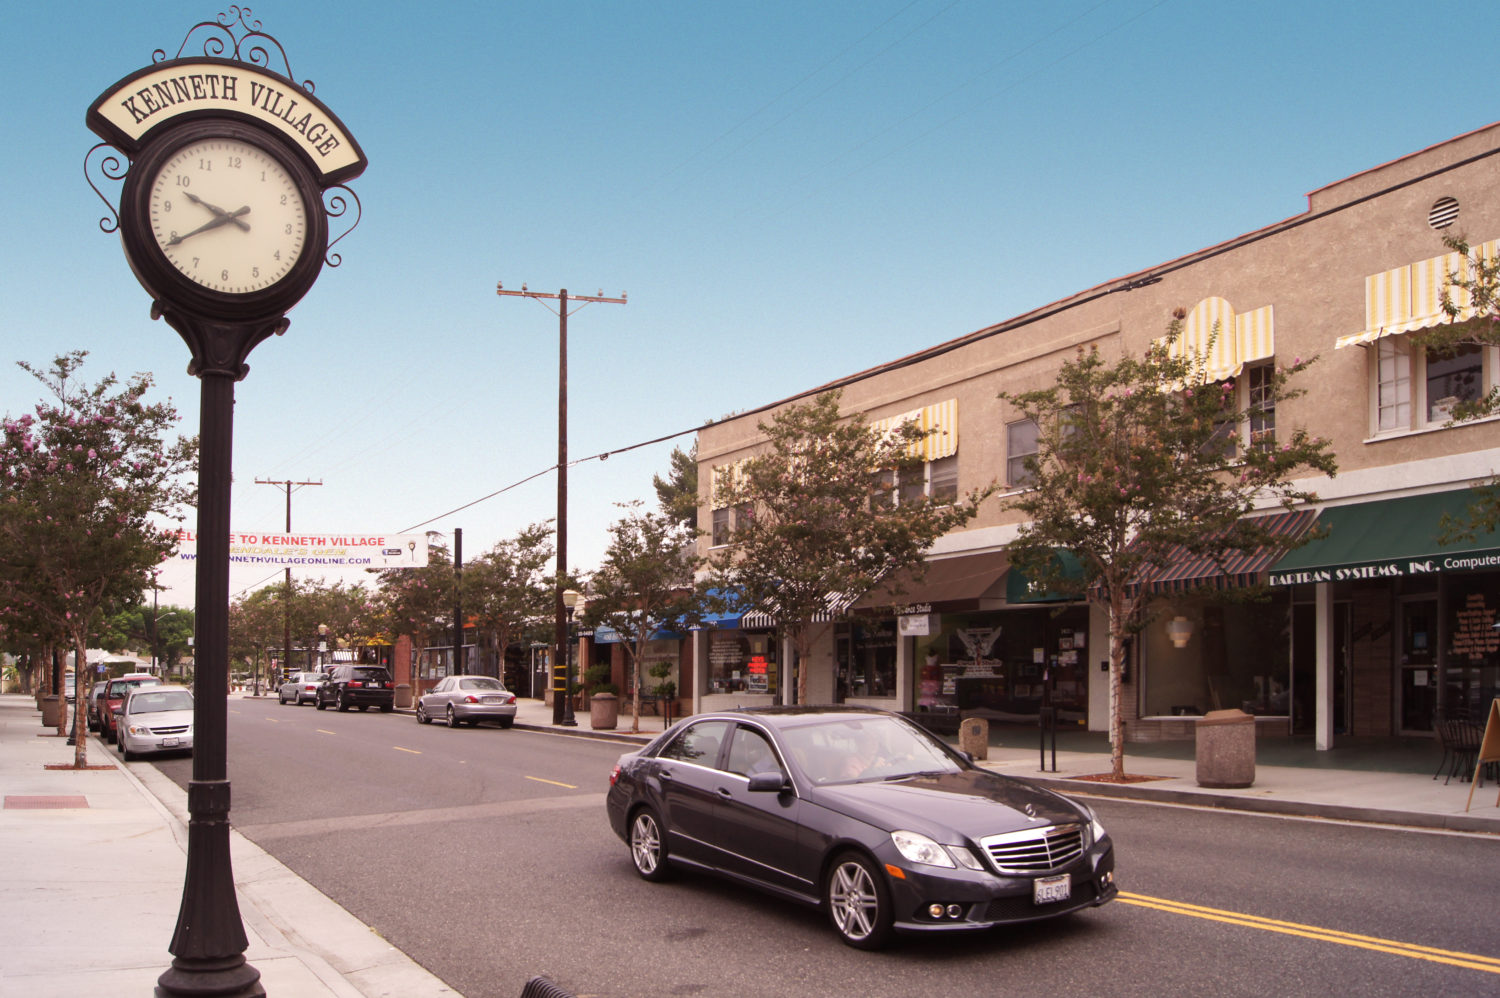 Quest Capital Sells Rare Mixed-Use Investment Kenneth Village